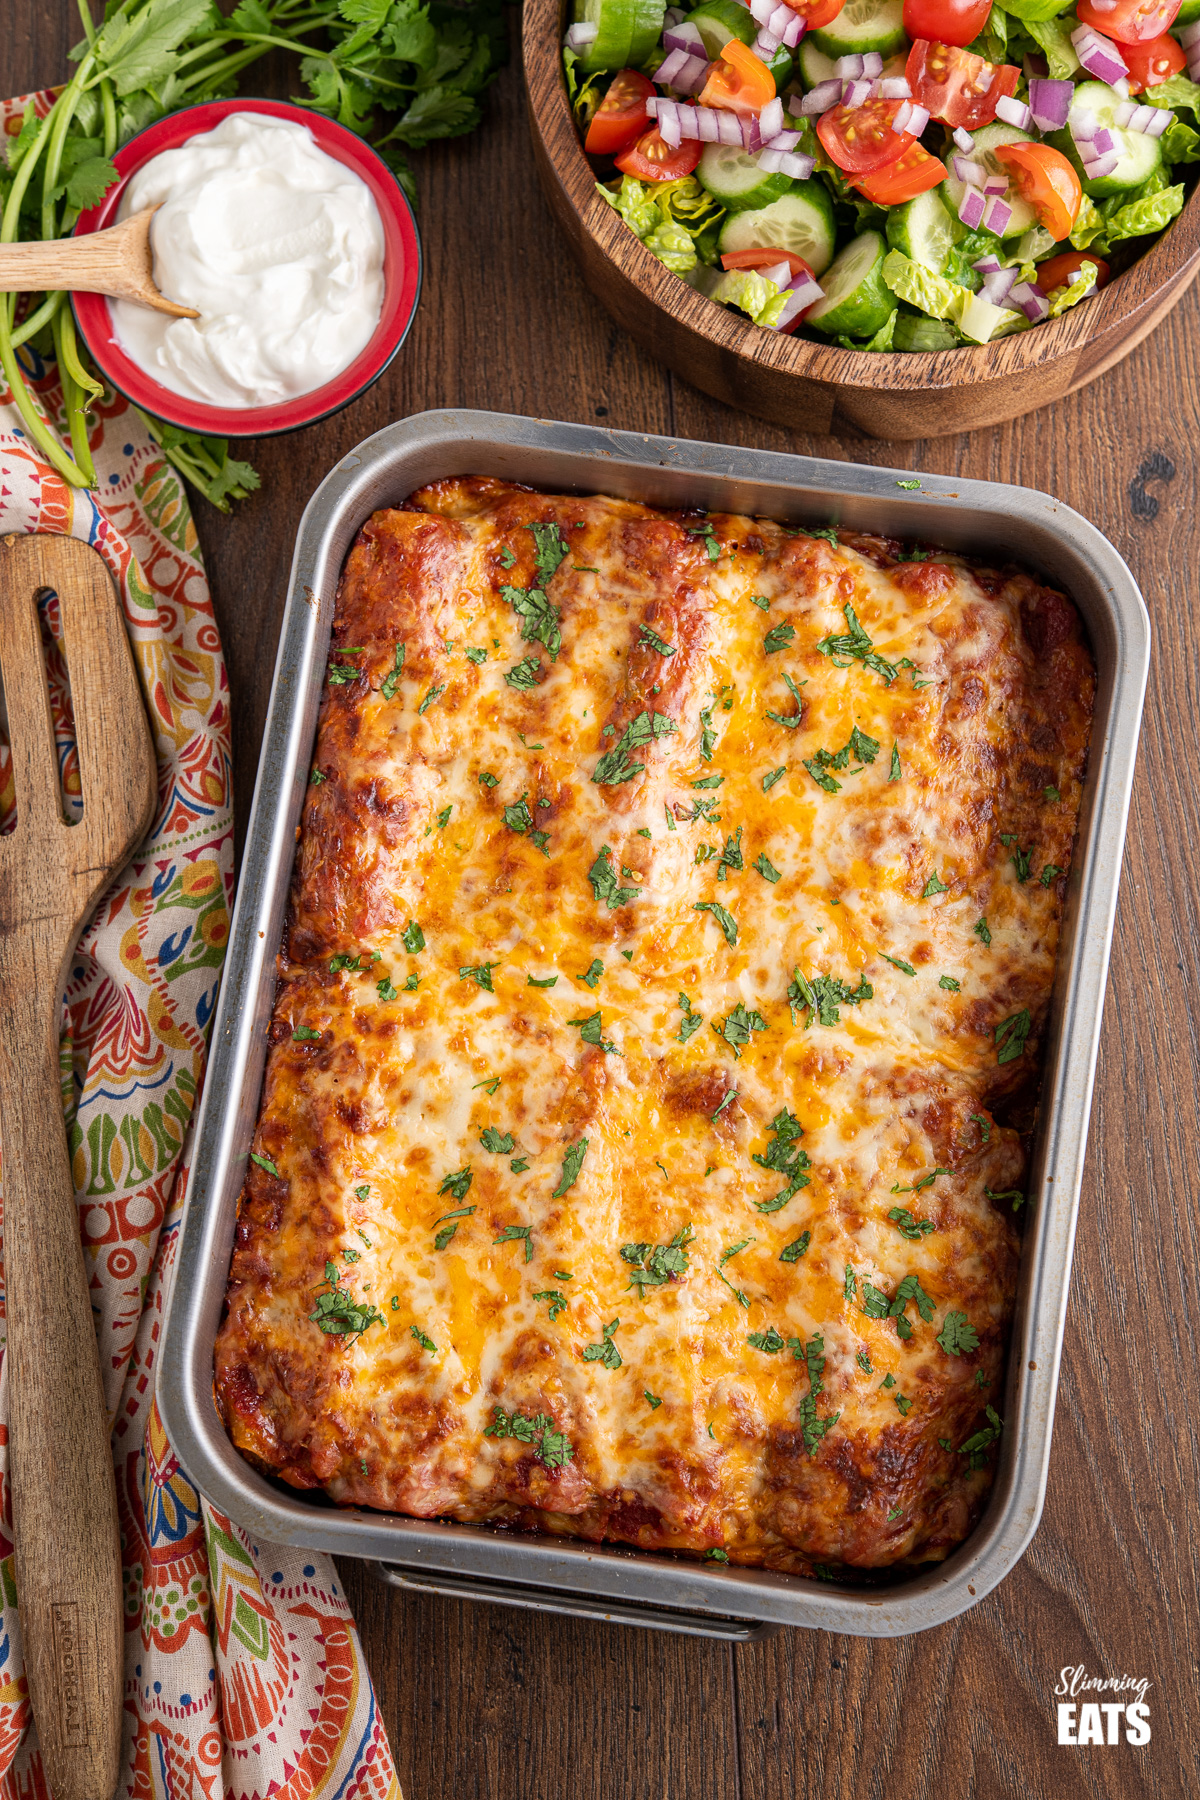 pasta chicken enchiladas in a metal baking tray with a mixed salad and soured cream in background